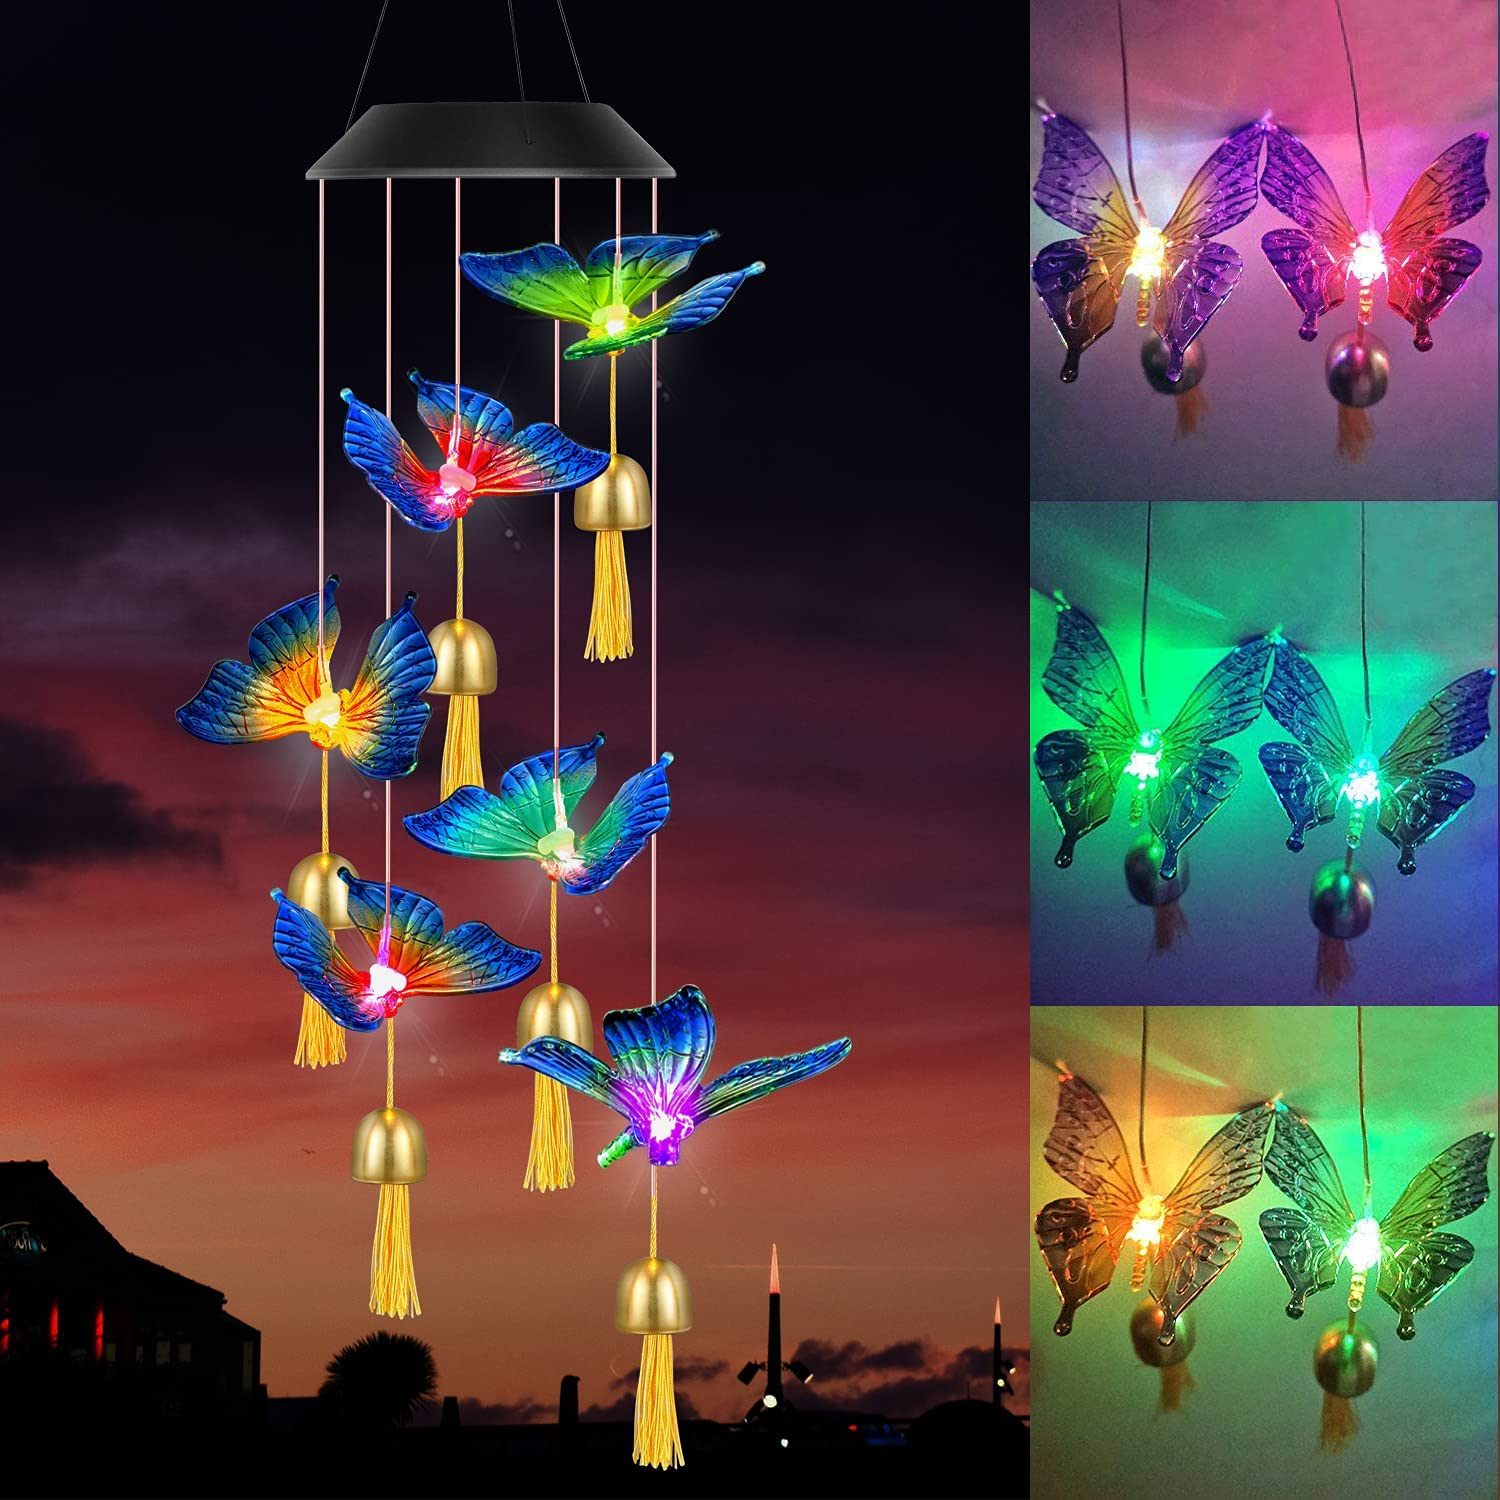 Homekey Solar Wind Chimes for Outside, Color Changing Butterfly Wind Chimes with Bells Outdoor, Waterproof LED Solar Lights for Garden, Patio, Party, Yard & Window, Gifts for mom Grandma